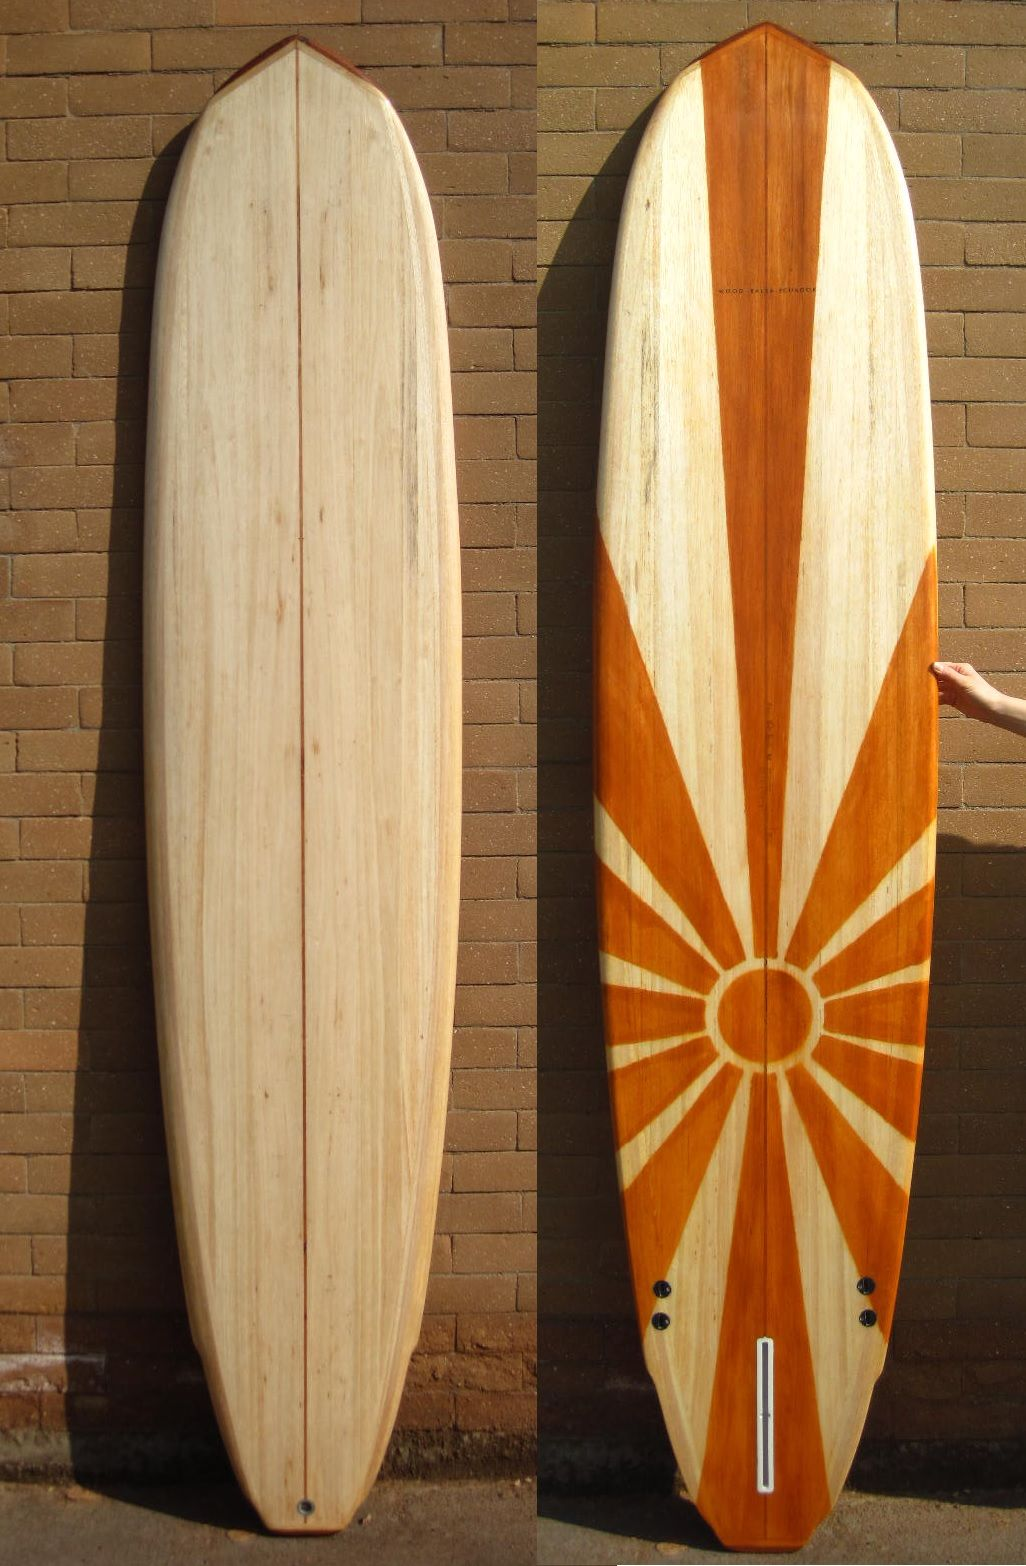 Tabla de Surf Madera de Balsa 8\' #LoveTillysBoardHouse, #Balsa Wood ...